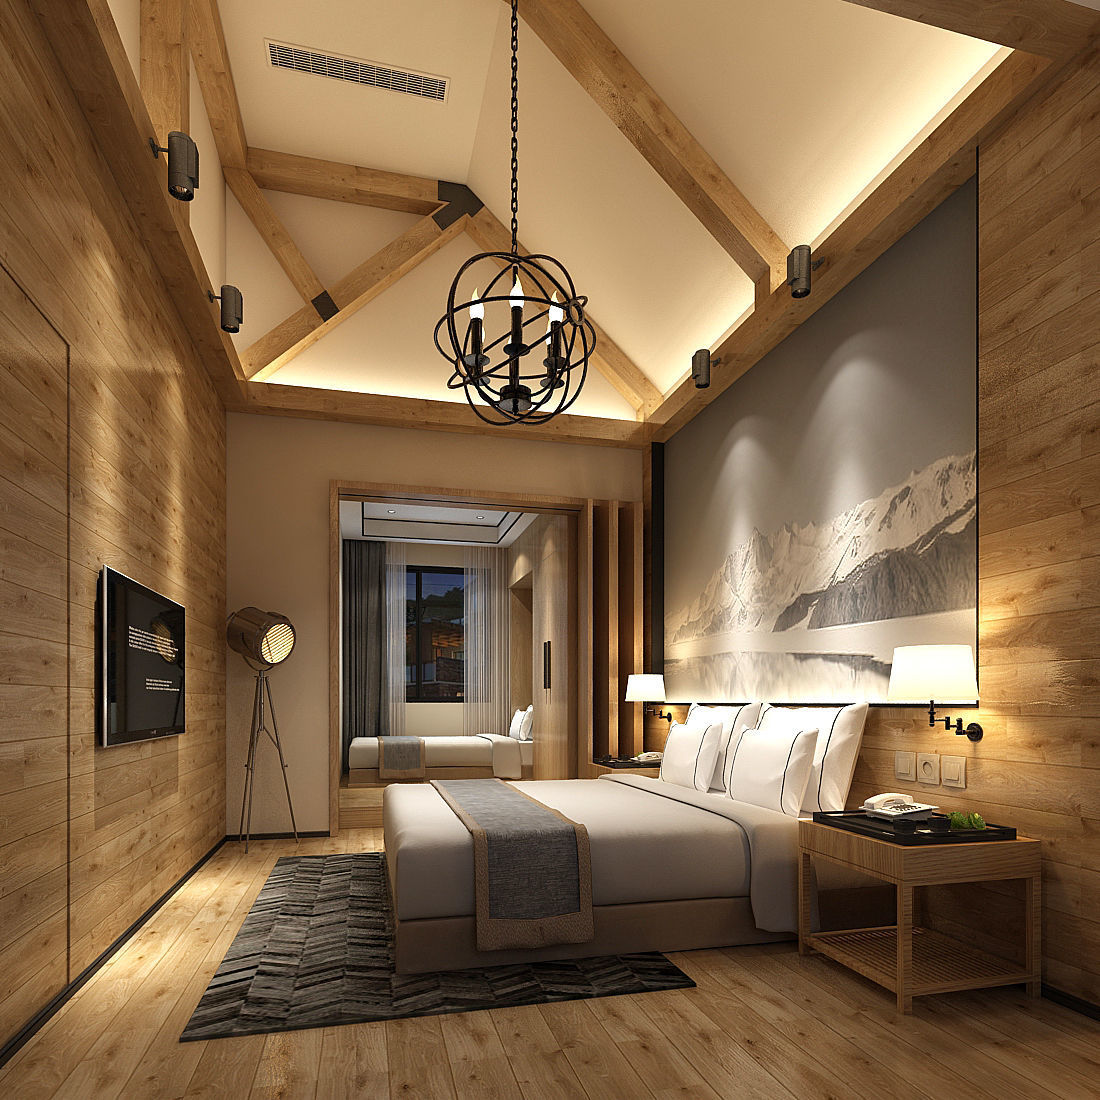 3D Deluxe master bedroom design 19 | CGTrader on Model Bedroom Ideas  id=56028